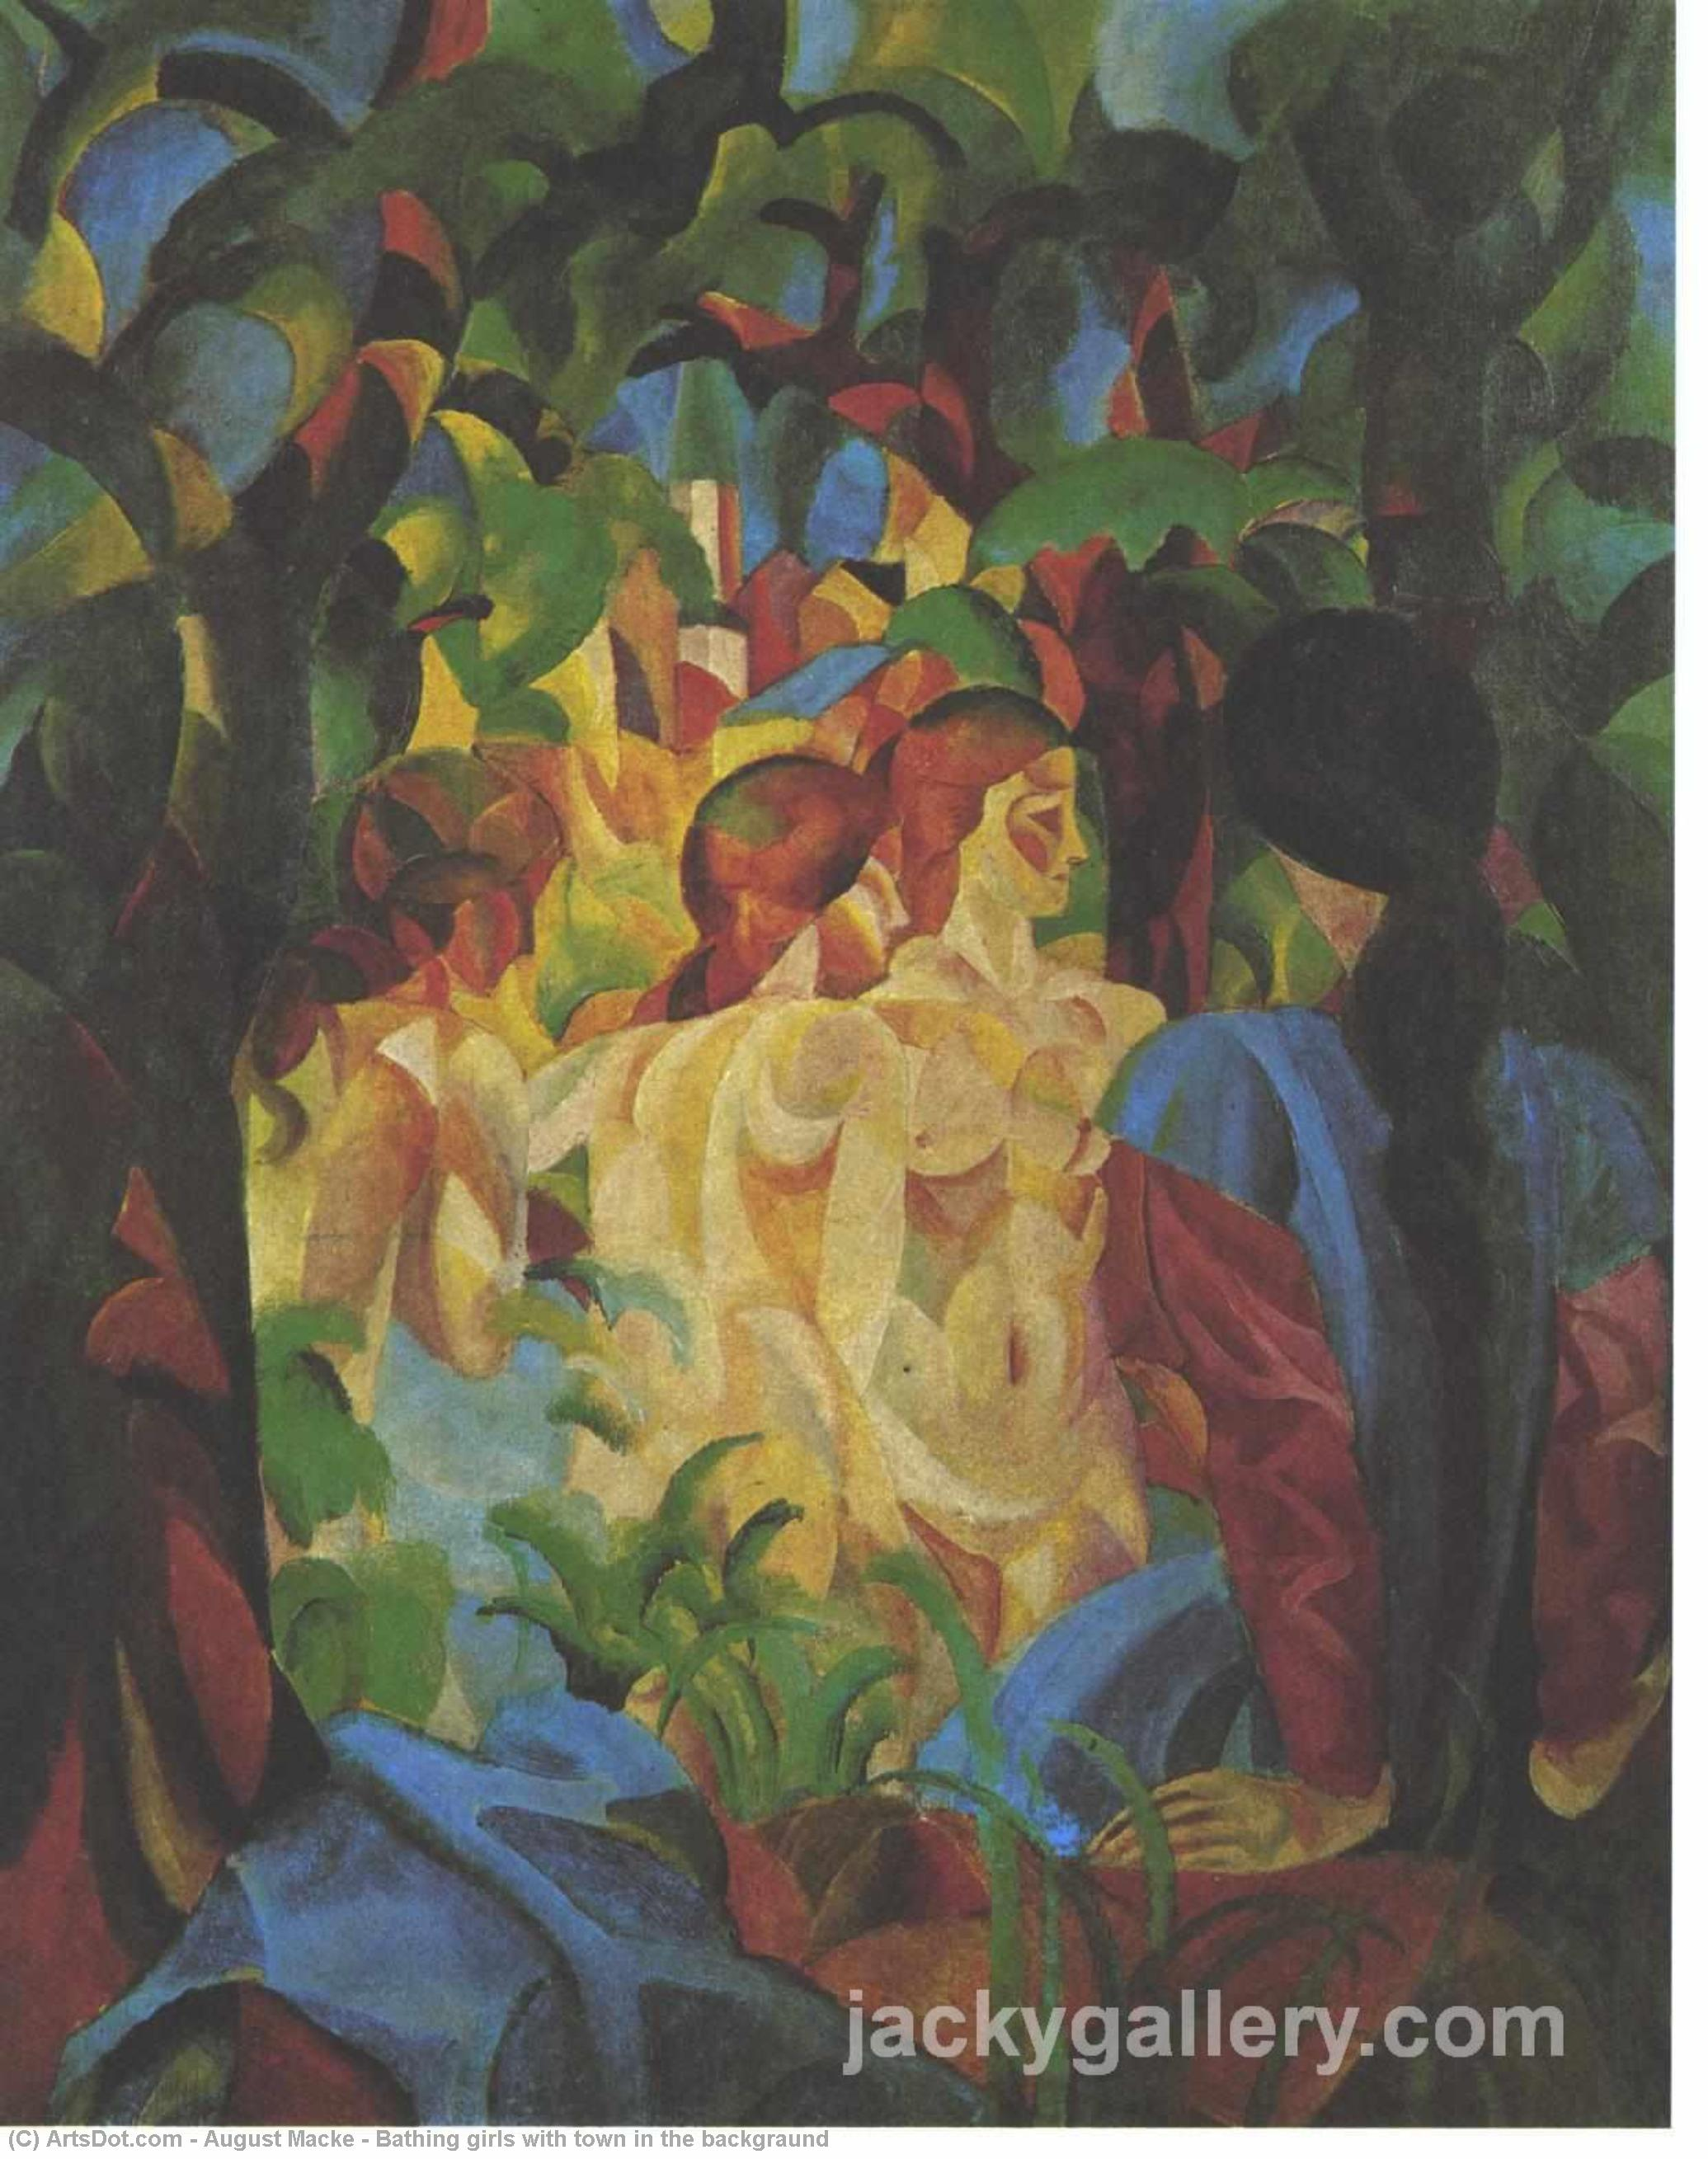 Wikioo.org - The Encyclopedia of Fine Arts - Painting, Artwork by August Macke - Bathing girls with town in the backgraund